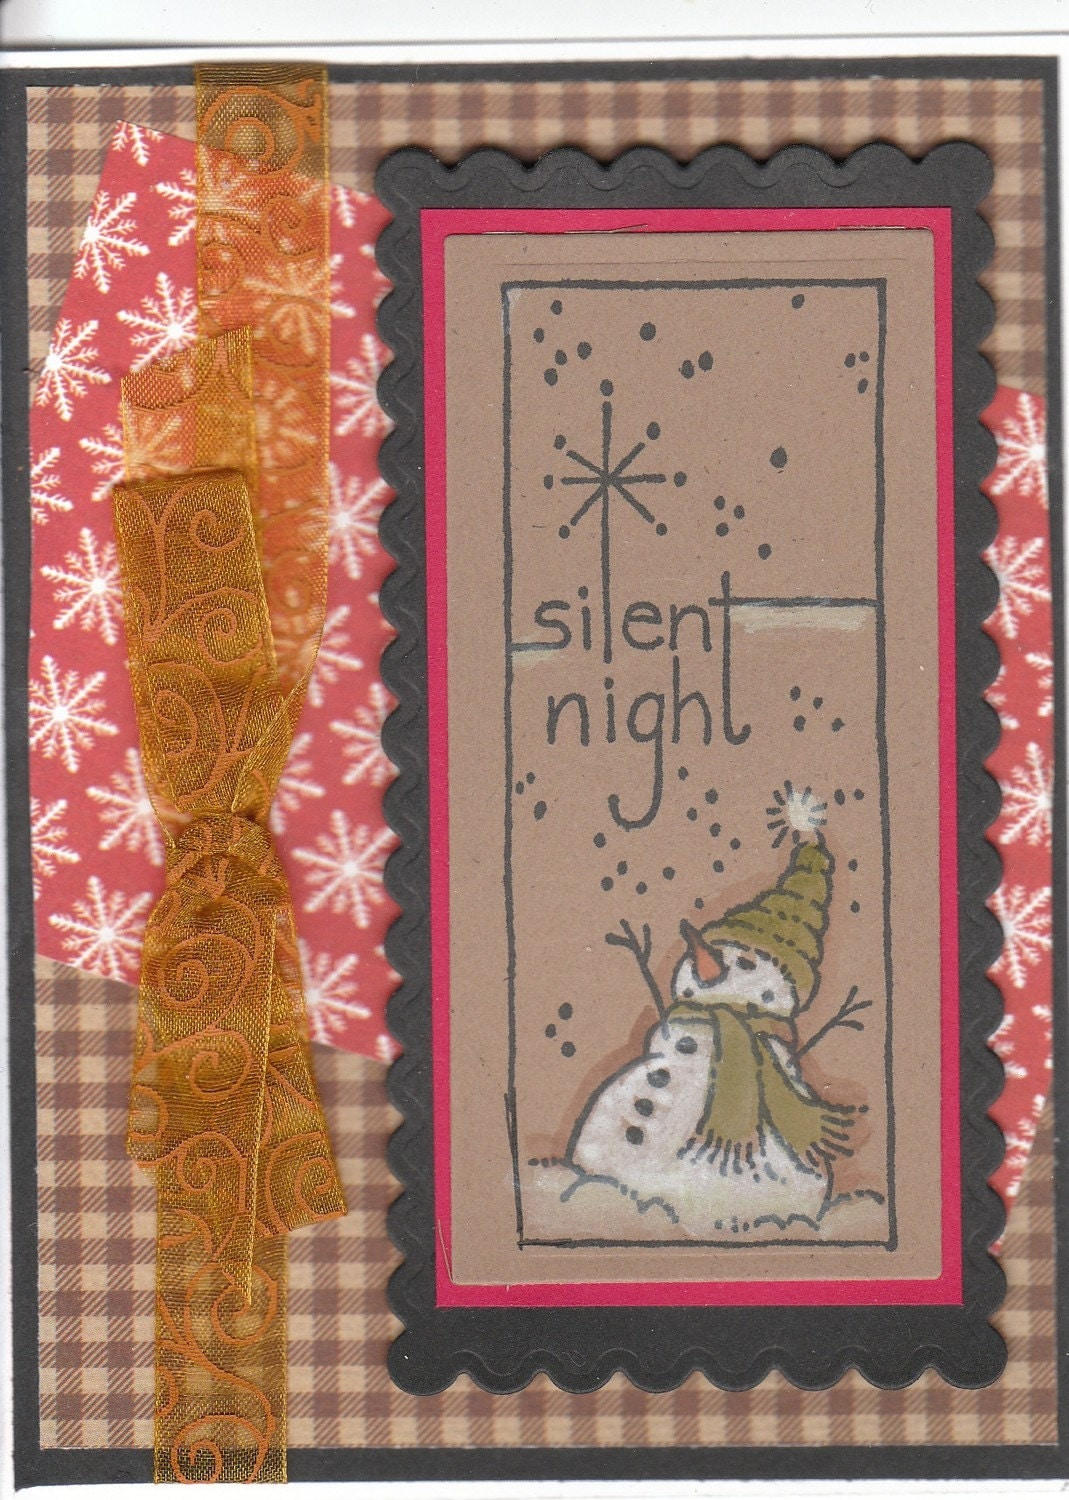 SILENT NIGHT WATERCOLOR SNOWMAN HANDMADE KRAFT CHRISTMAS CARD